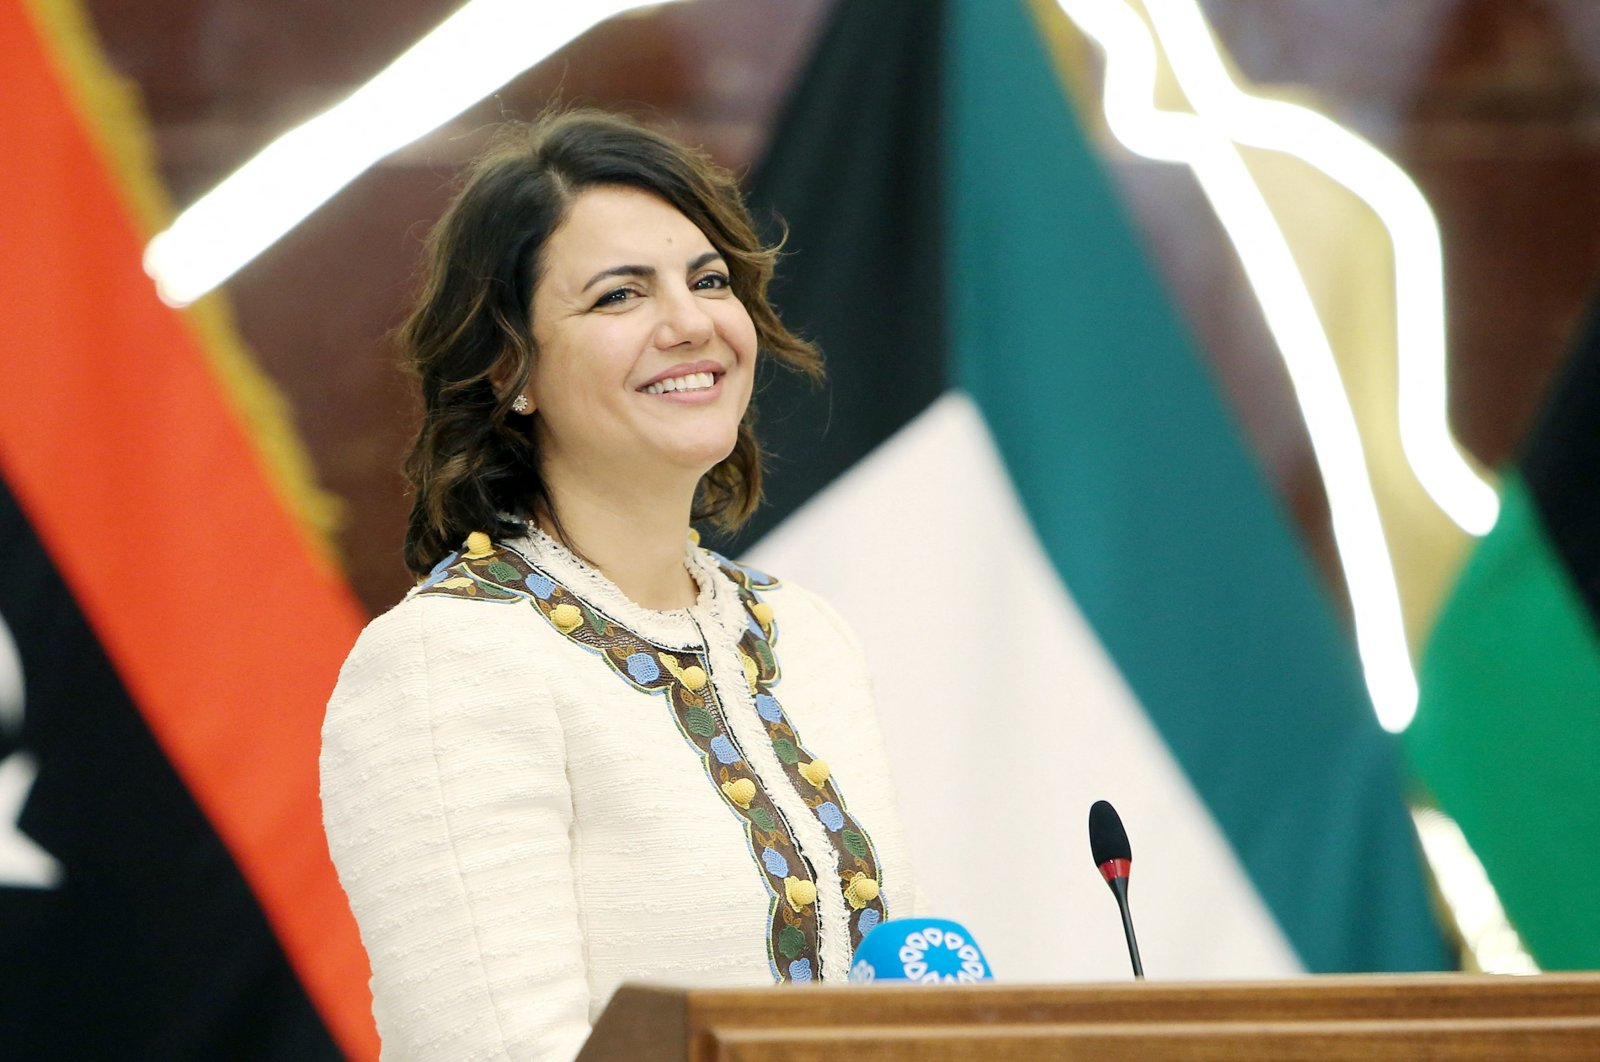 Libyan Foreign Minister Najla Mangoush speaks during a joint press conference with her Kuwaiti counterpart in Kuwait City on Oct. 3, 2021. (AFP Photo)